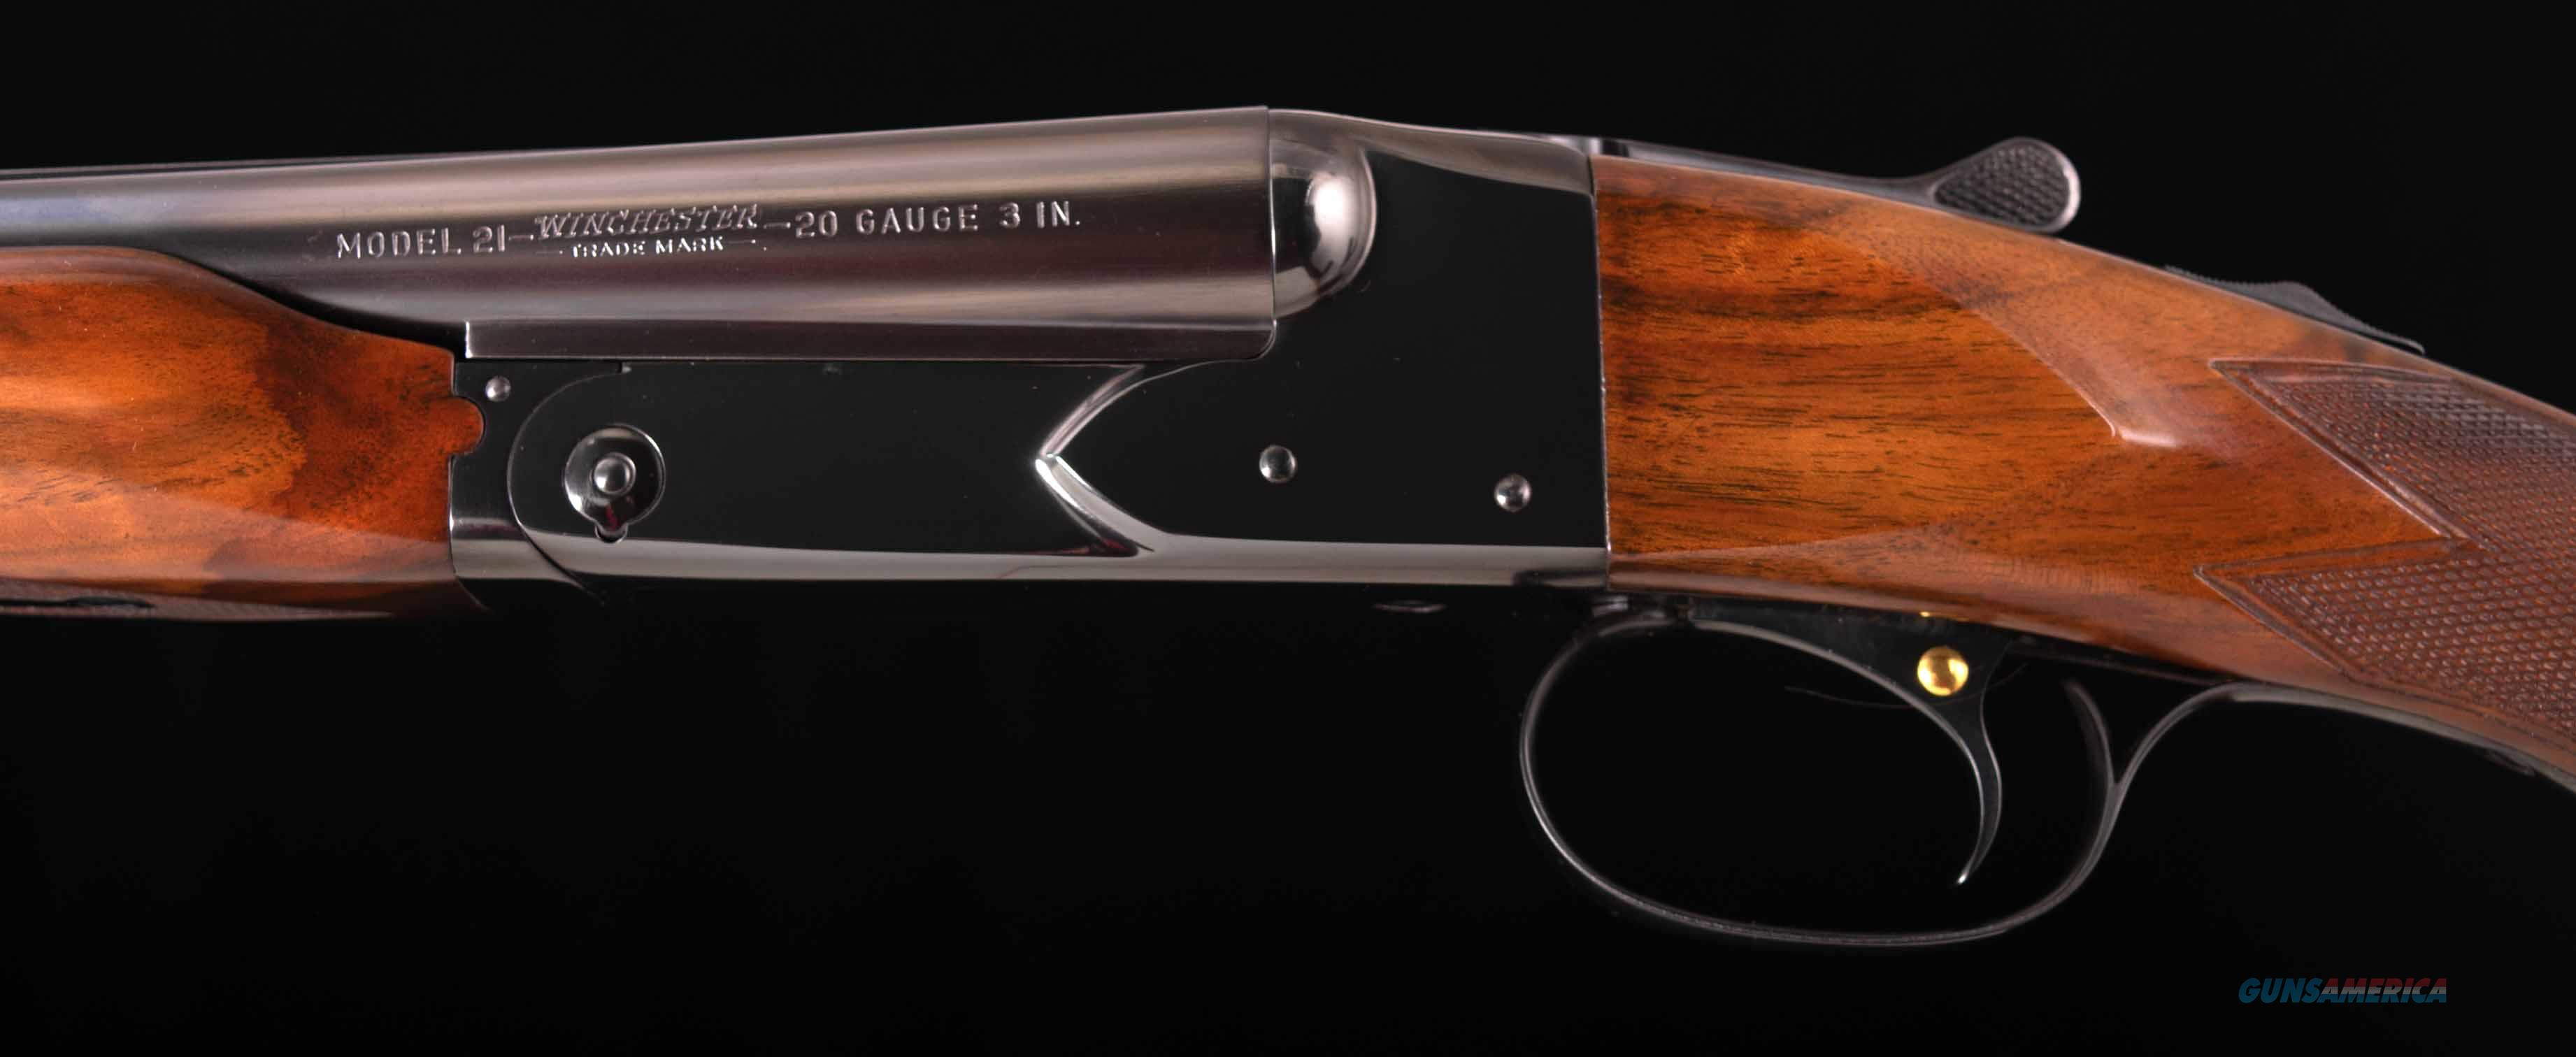 Winchester Model 21 20 Gauge – RARE!, 1 of 123 MAGNUMS!, vintage firearms inc  Guns > Shotguns > Winchester Shotguns - Modern > SxS